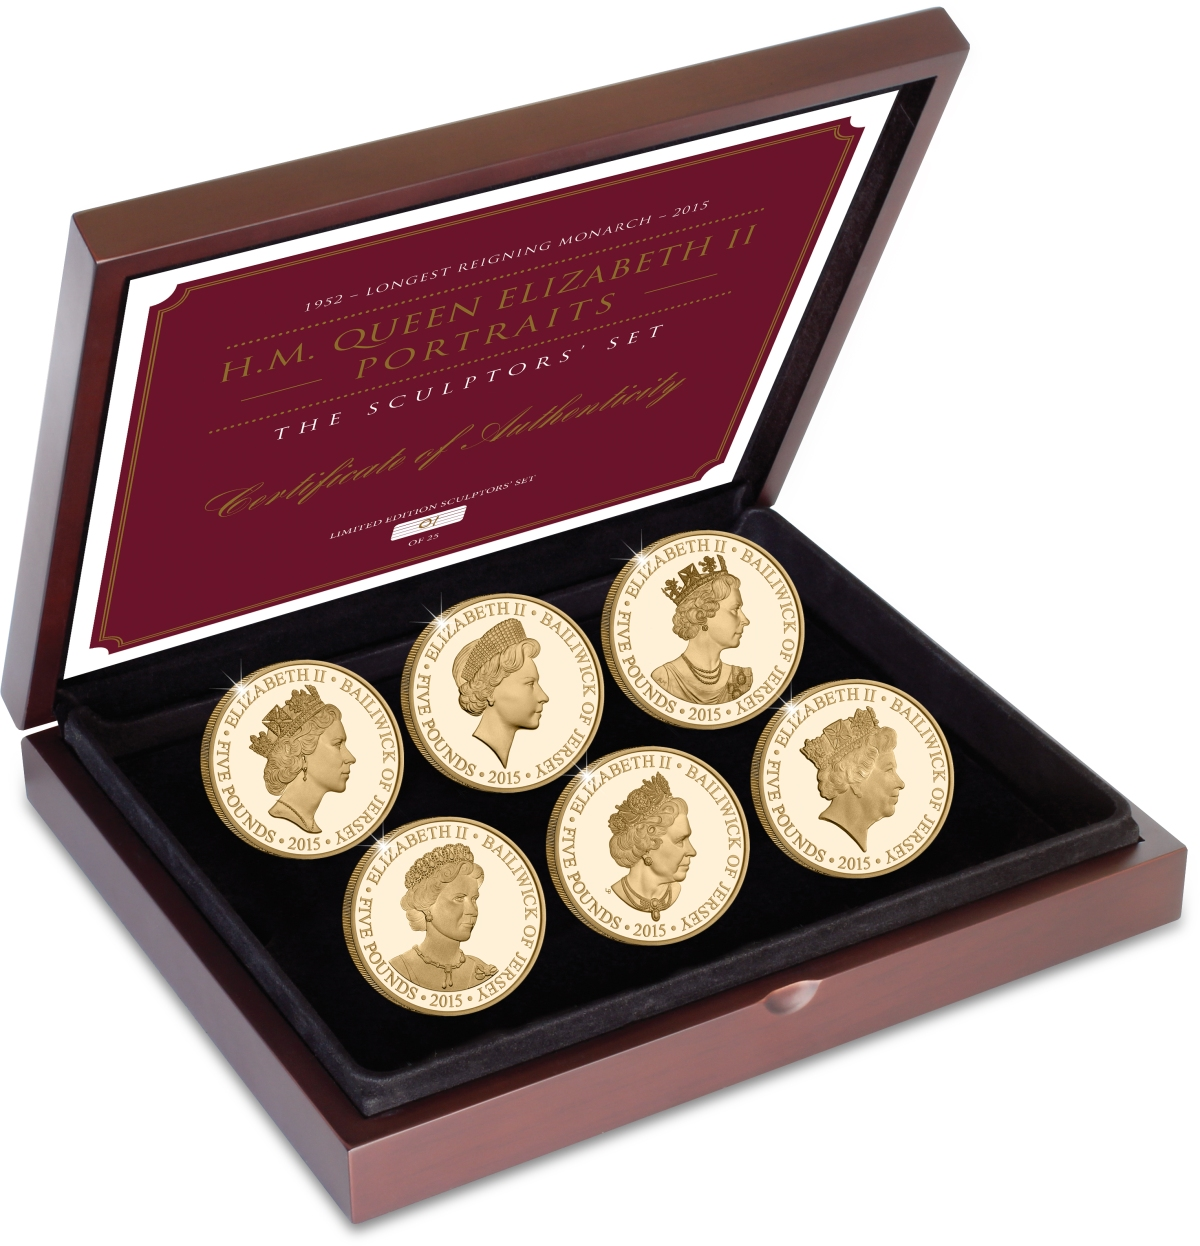 st qeii portrait gold set in box with cert - The fastest sell-outs of 2015… and my tips for 2016